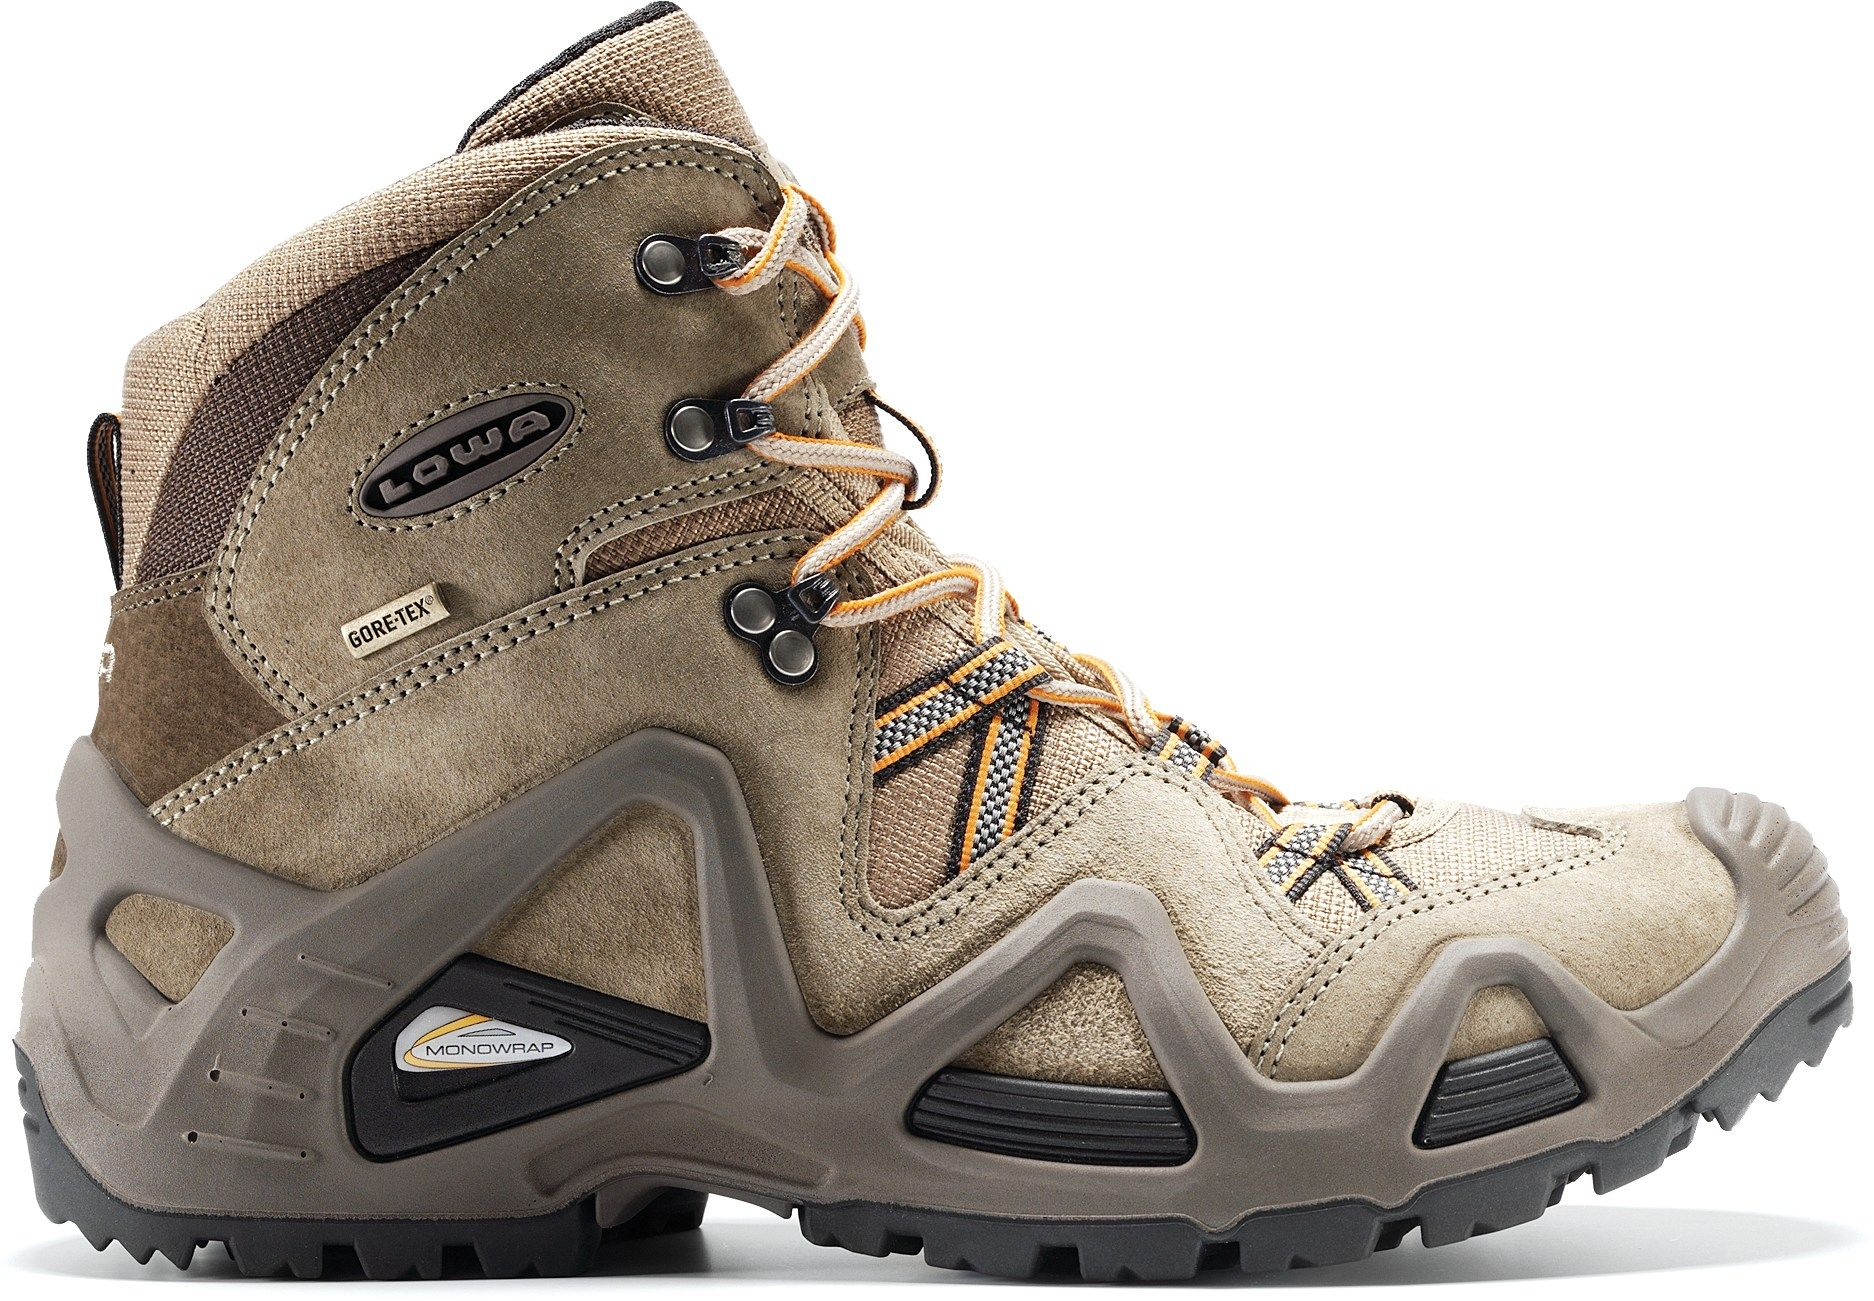 c172b31c045 Zephyr GTX Mid Hiking Boots - Men's | Things I love | Hiking boots ...